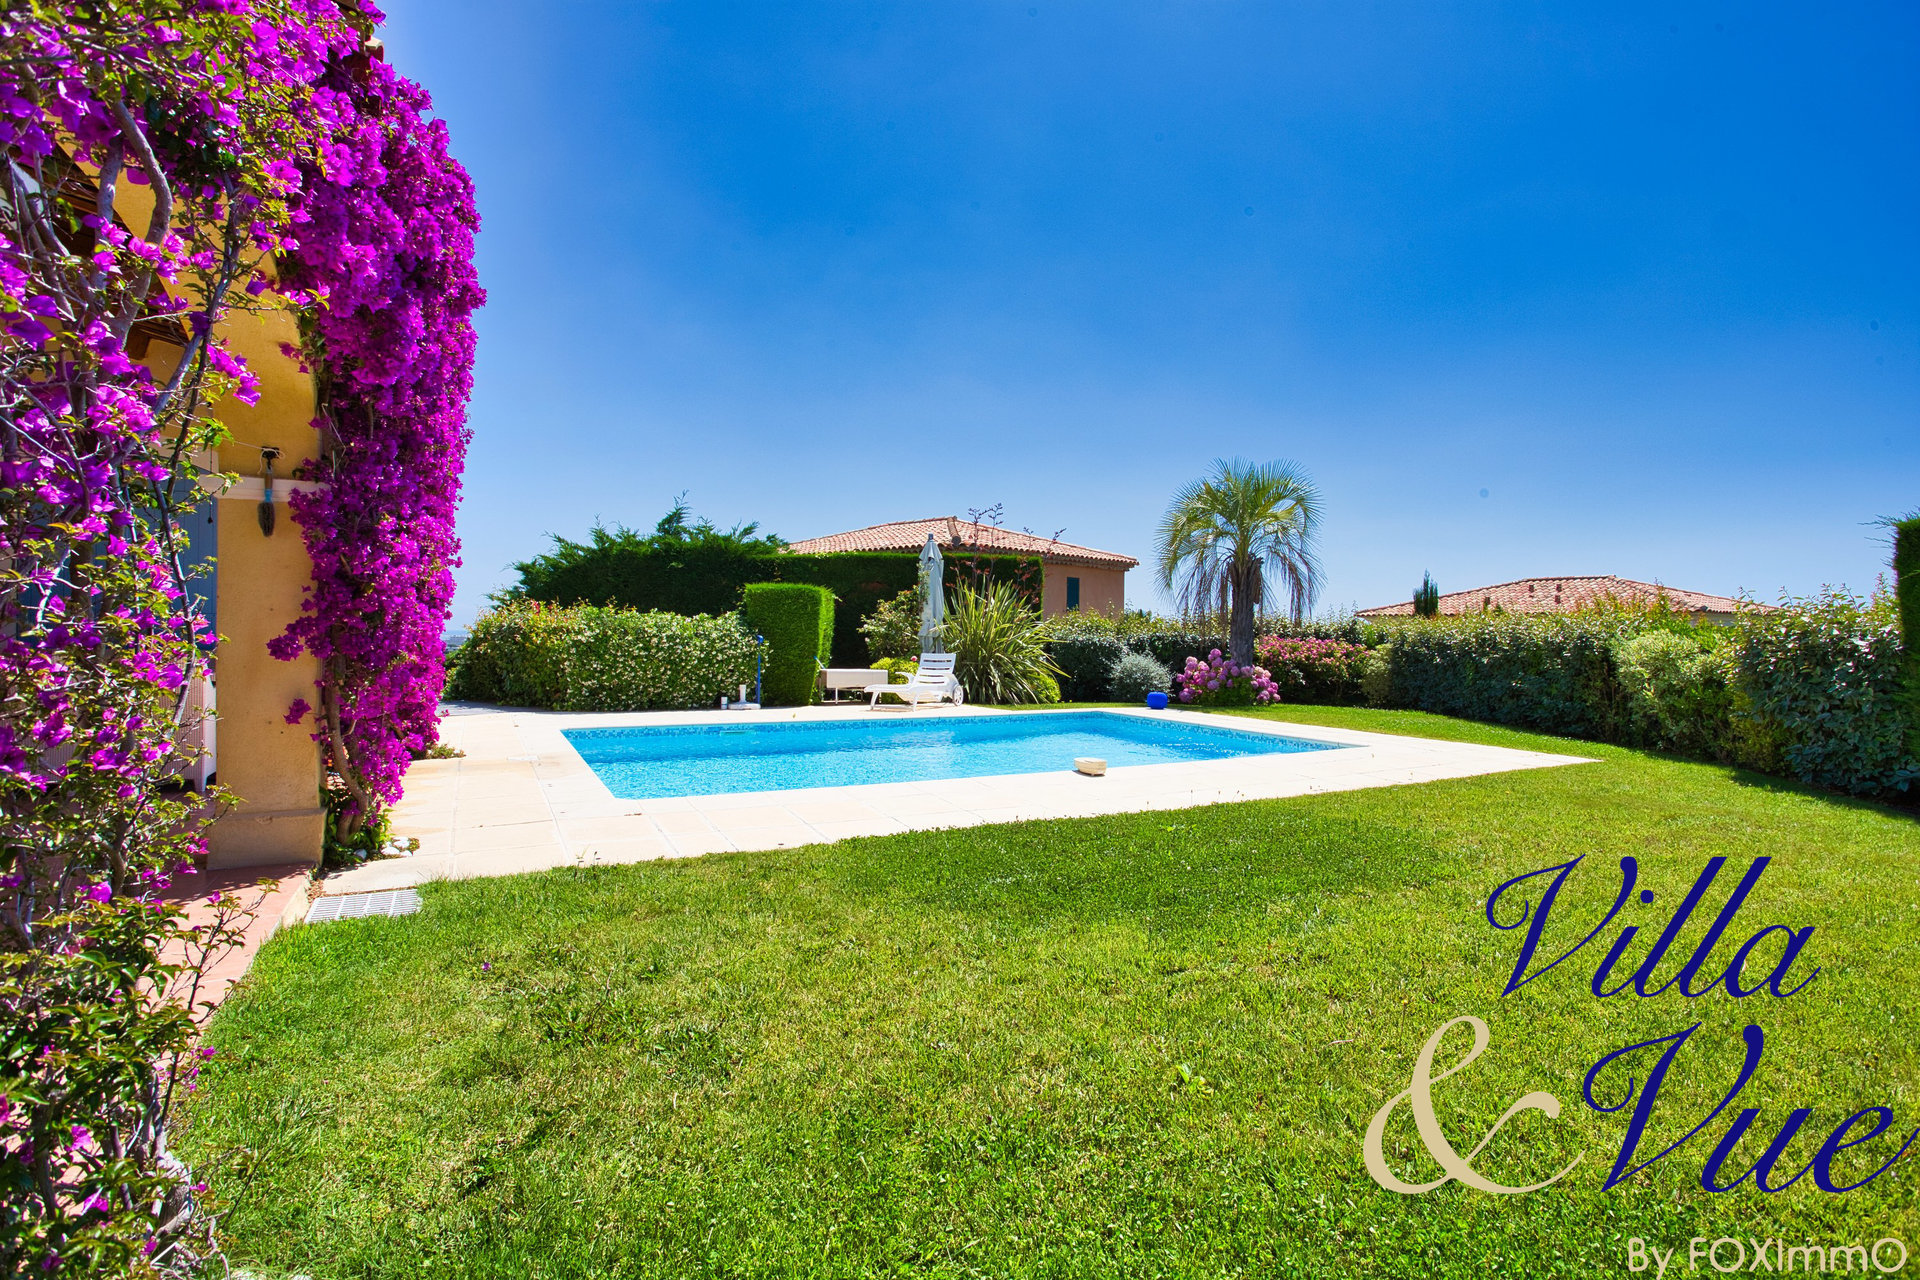 An exclusivity Foximmo, villa sea view, 5P , recent, swimming pool flat garden